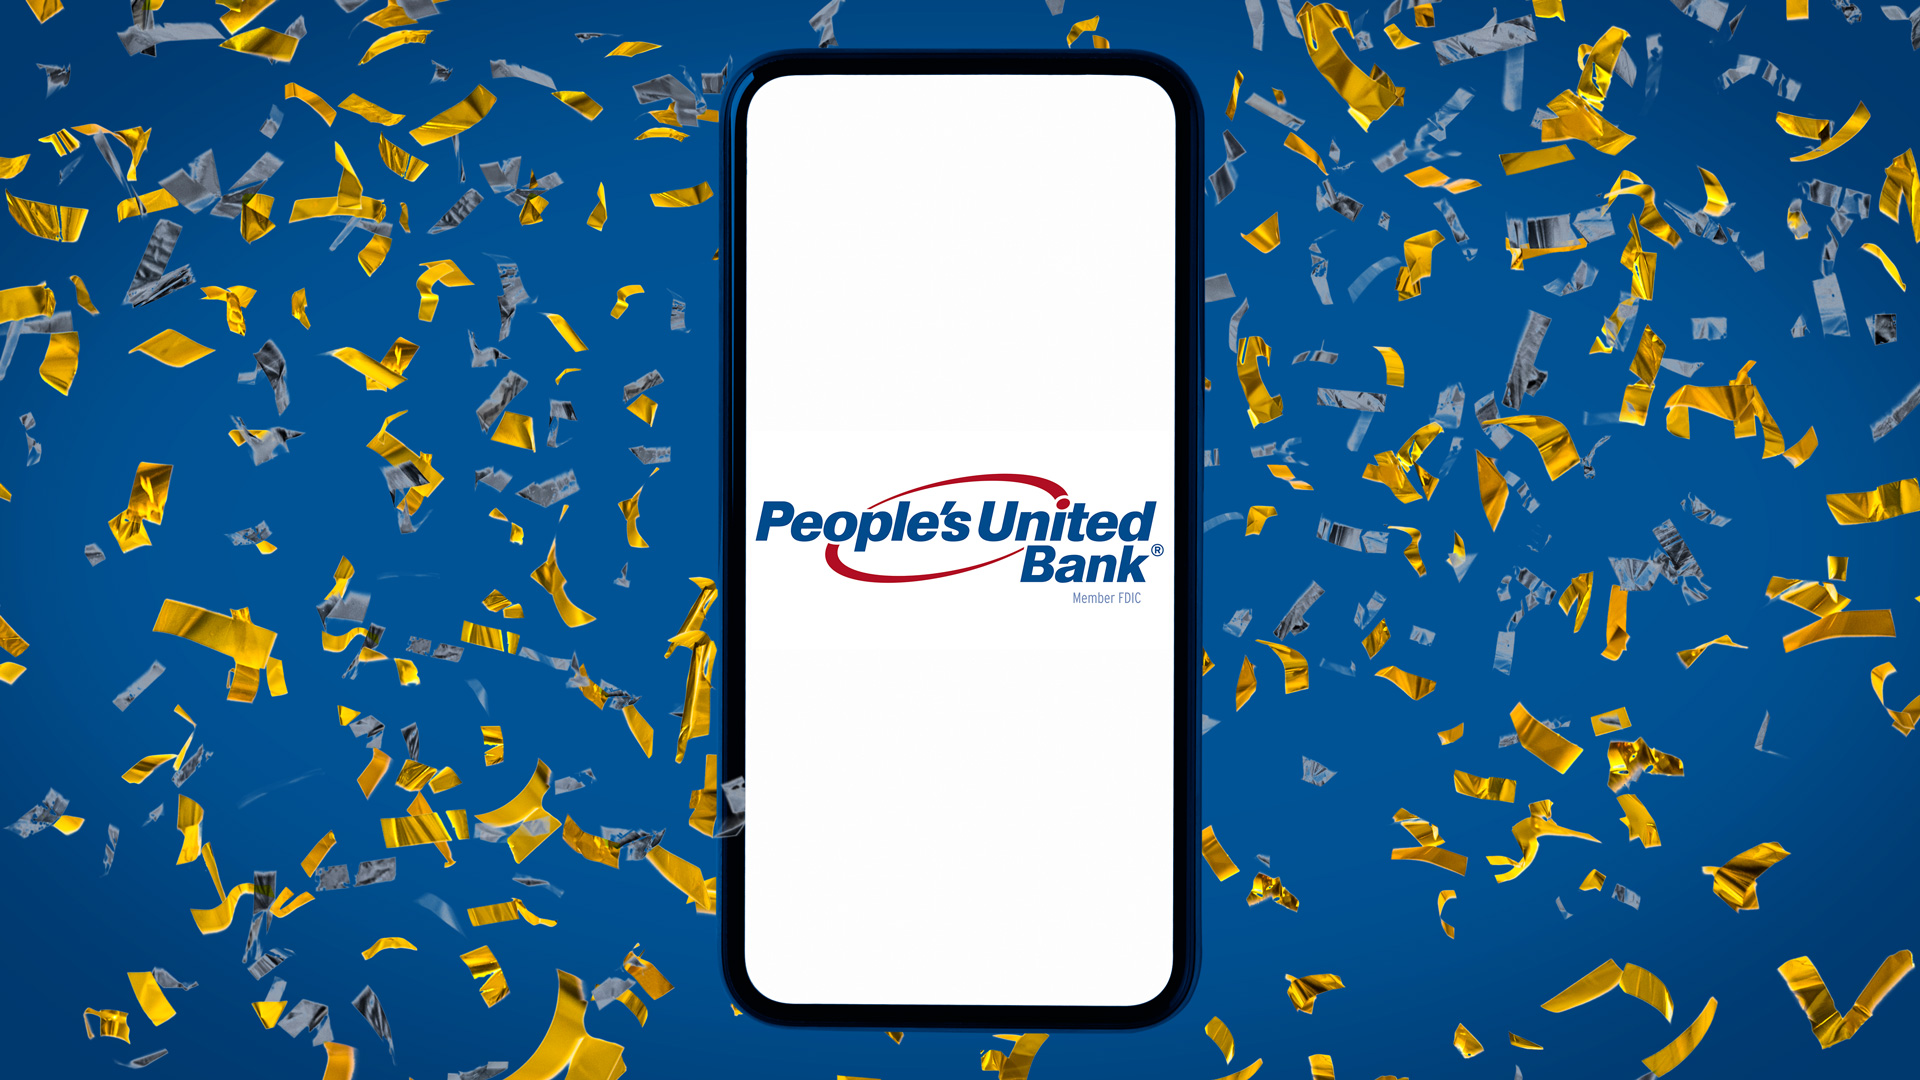 Peoples United Bank promotions